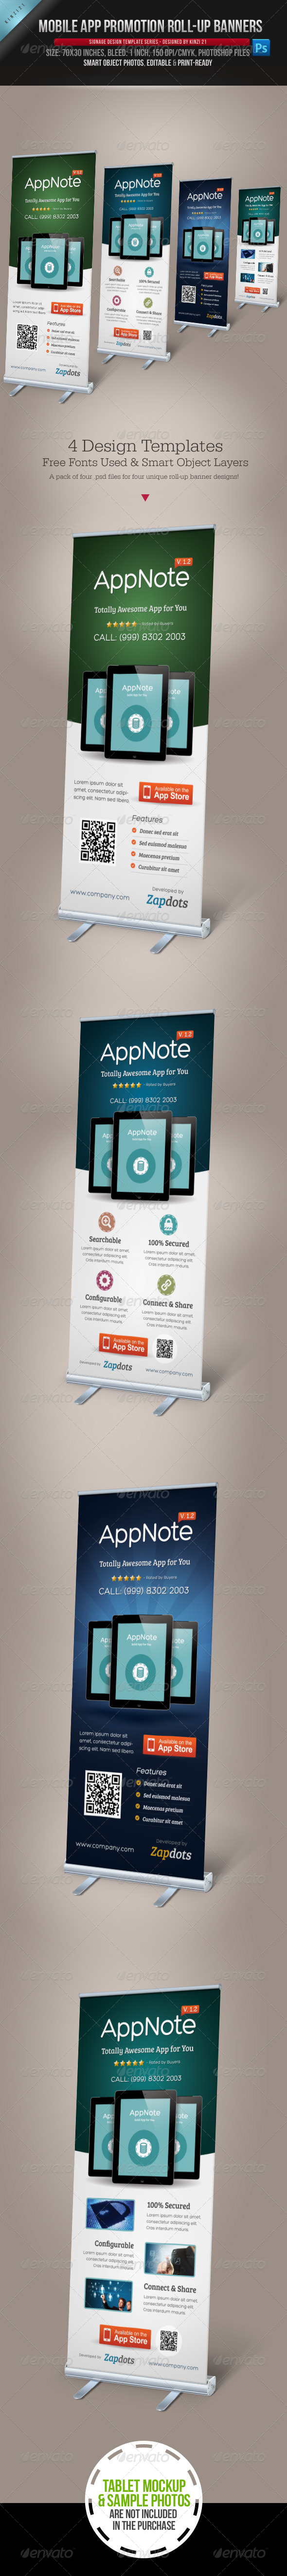 GraphicRiver Mobile App Promotion Roll-up Banners 4042603